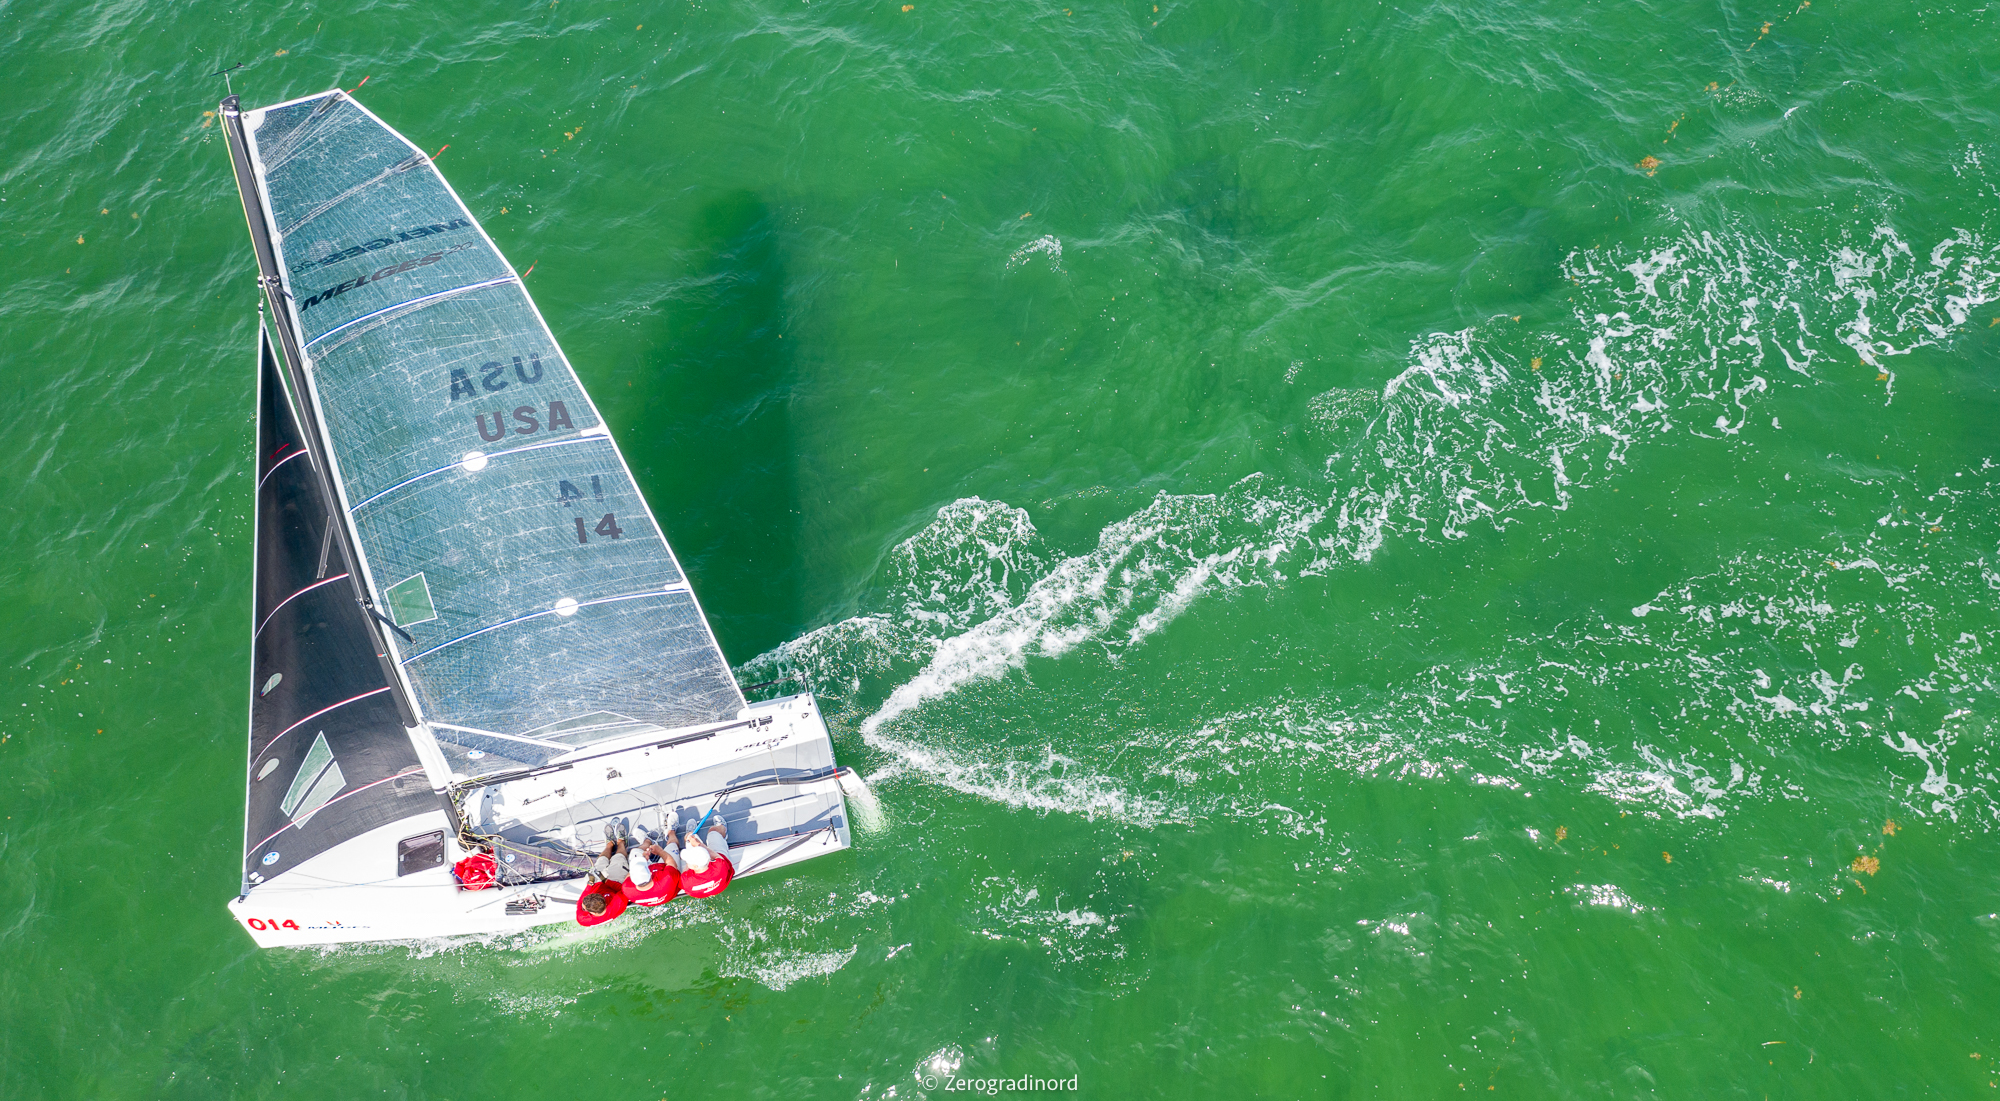 Melges20_050419_low-99.jpg